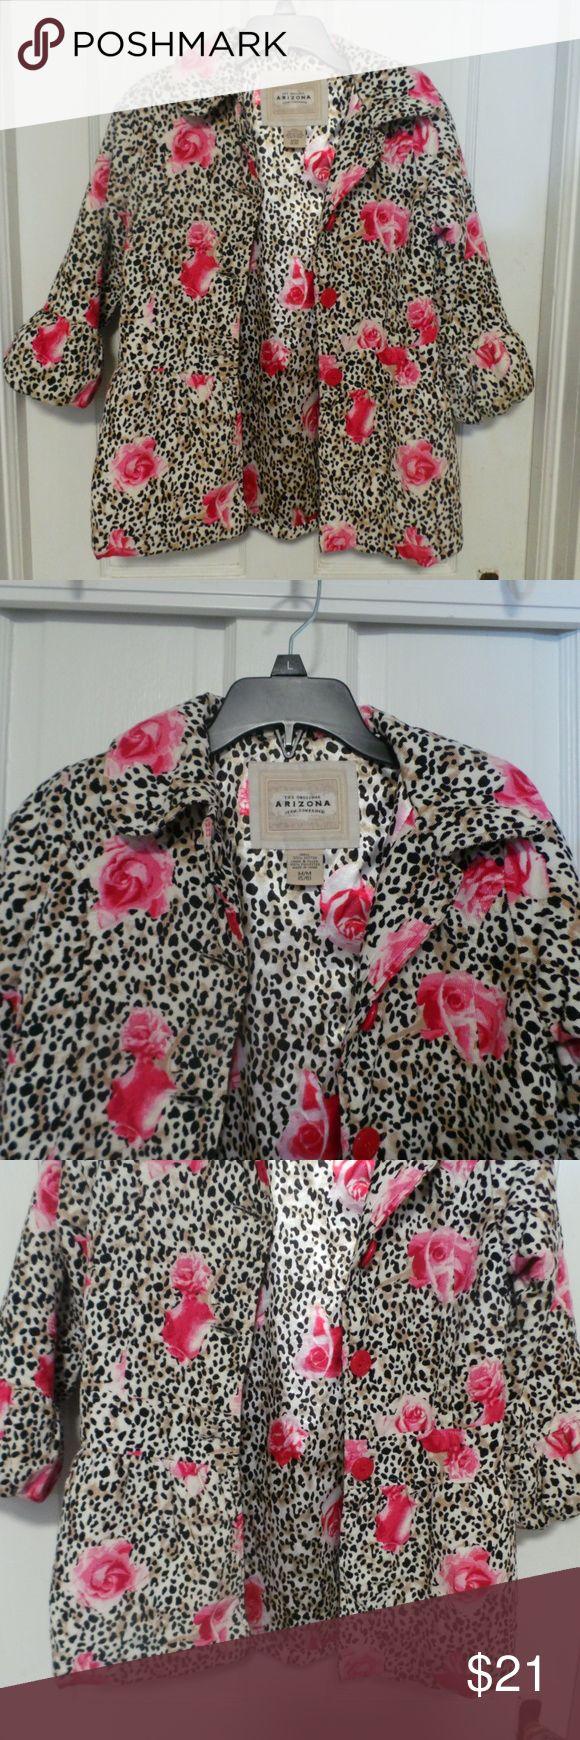 Arizona Girl's Print Coat Girl's size Medium 5-6 Coat. Very pretty and soft material. The outer layer is a soft corduroy material. Fully lined and quilted for warmth. Pattern is an animal print covered in pink roses. Button closure. Sleeves have a wide ruffley band at the wrist. Measures: chest 26, length 23. Arizona Jean Company Jackets & Coats